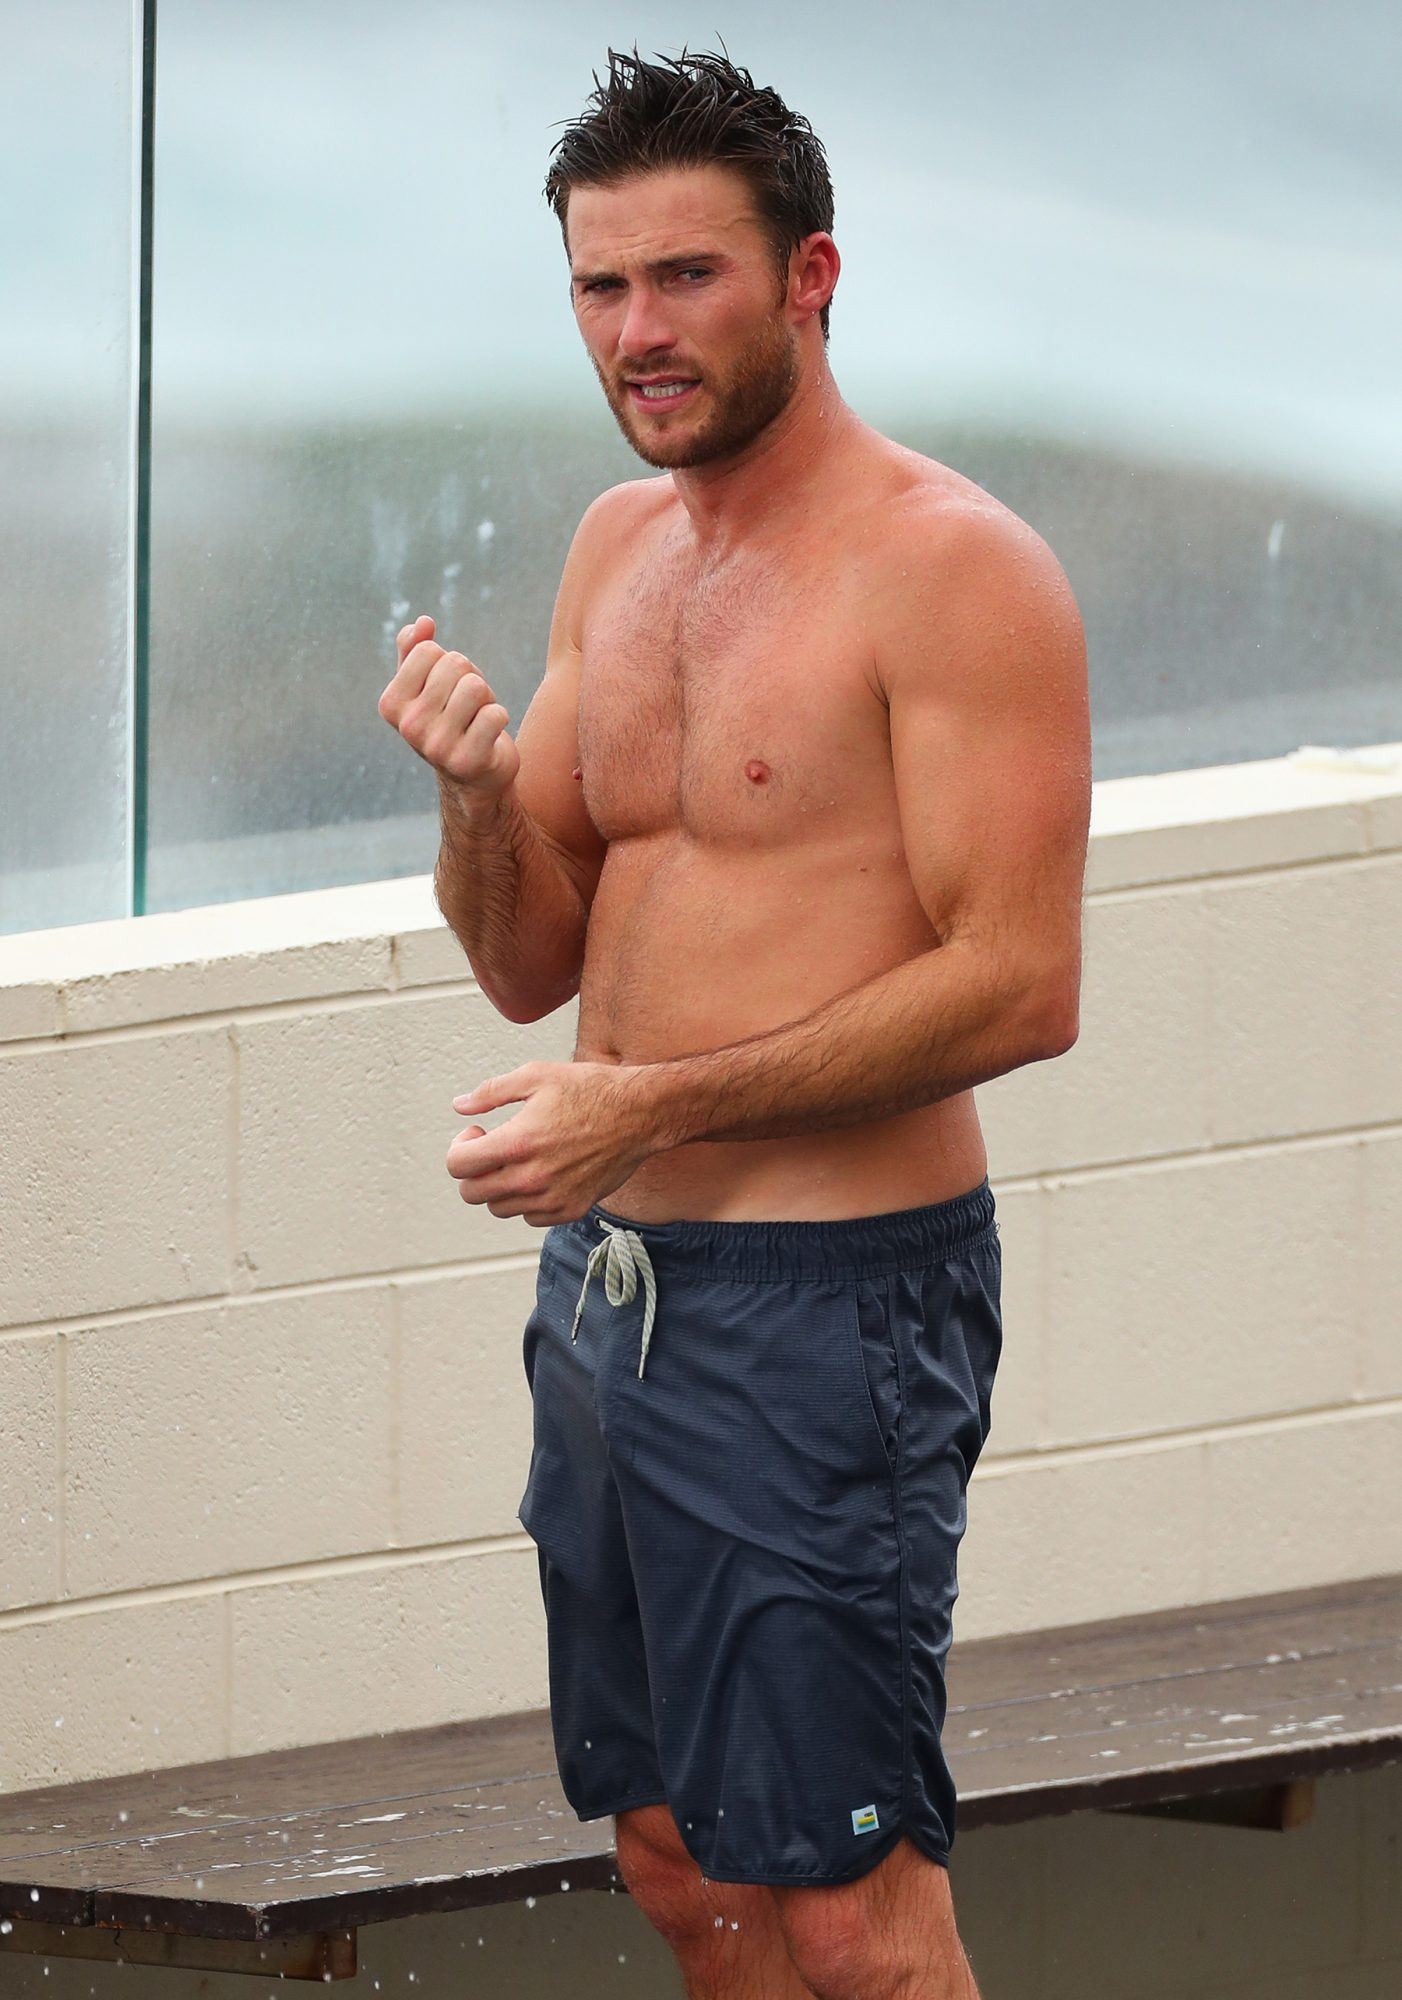 EXCLUSIVE: Scott Eastwood Pictured Shirtless at the Iconic Icebergs in Bondi, Sydney.